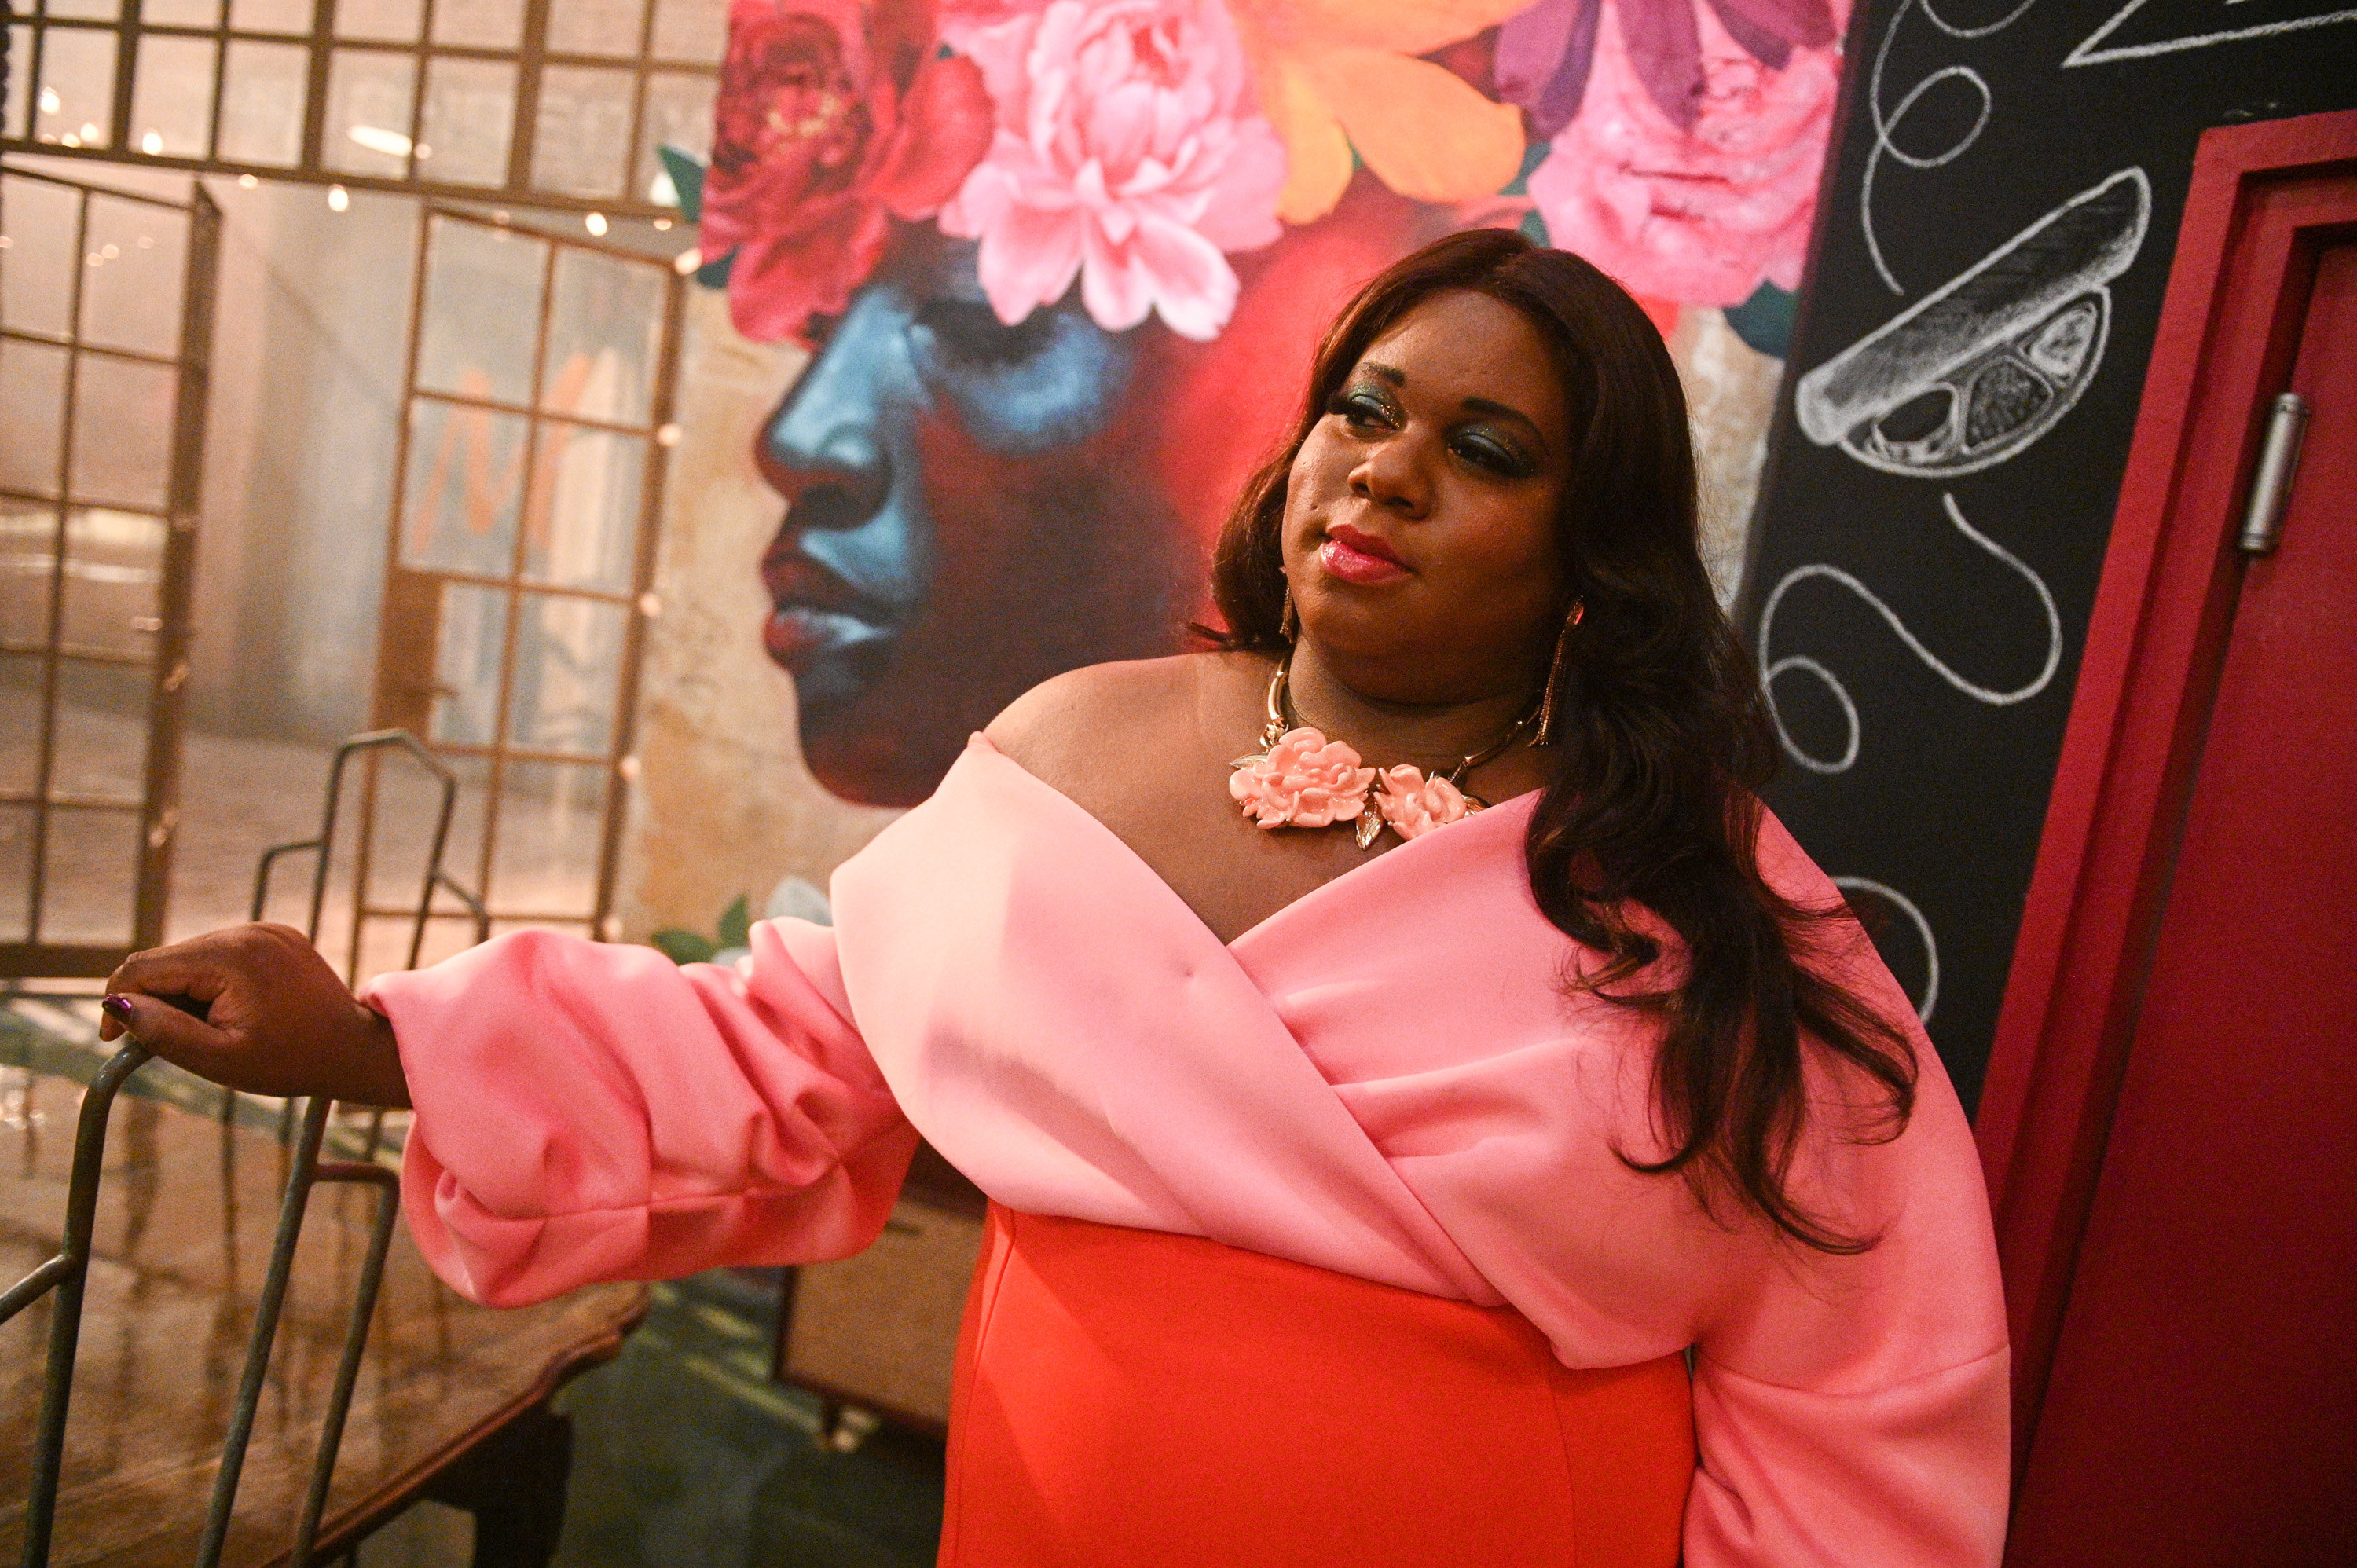 Alex Newell stands in a gorgeous pink dress